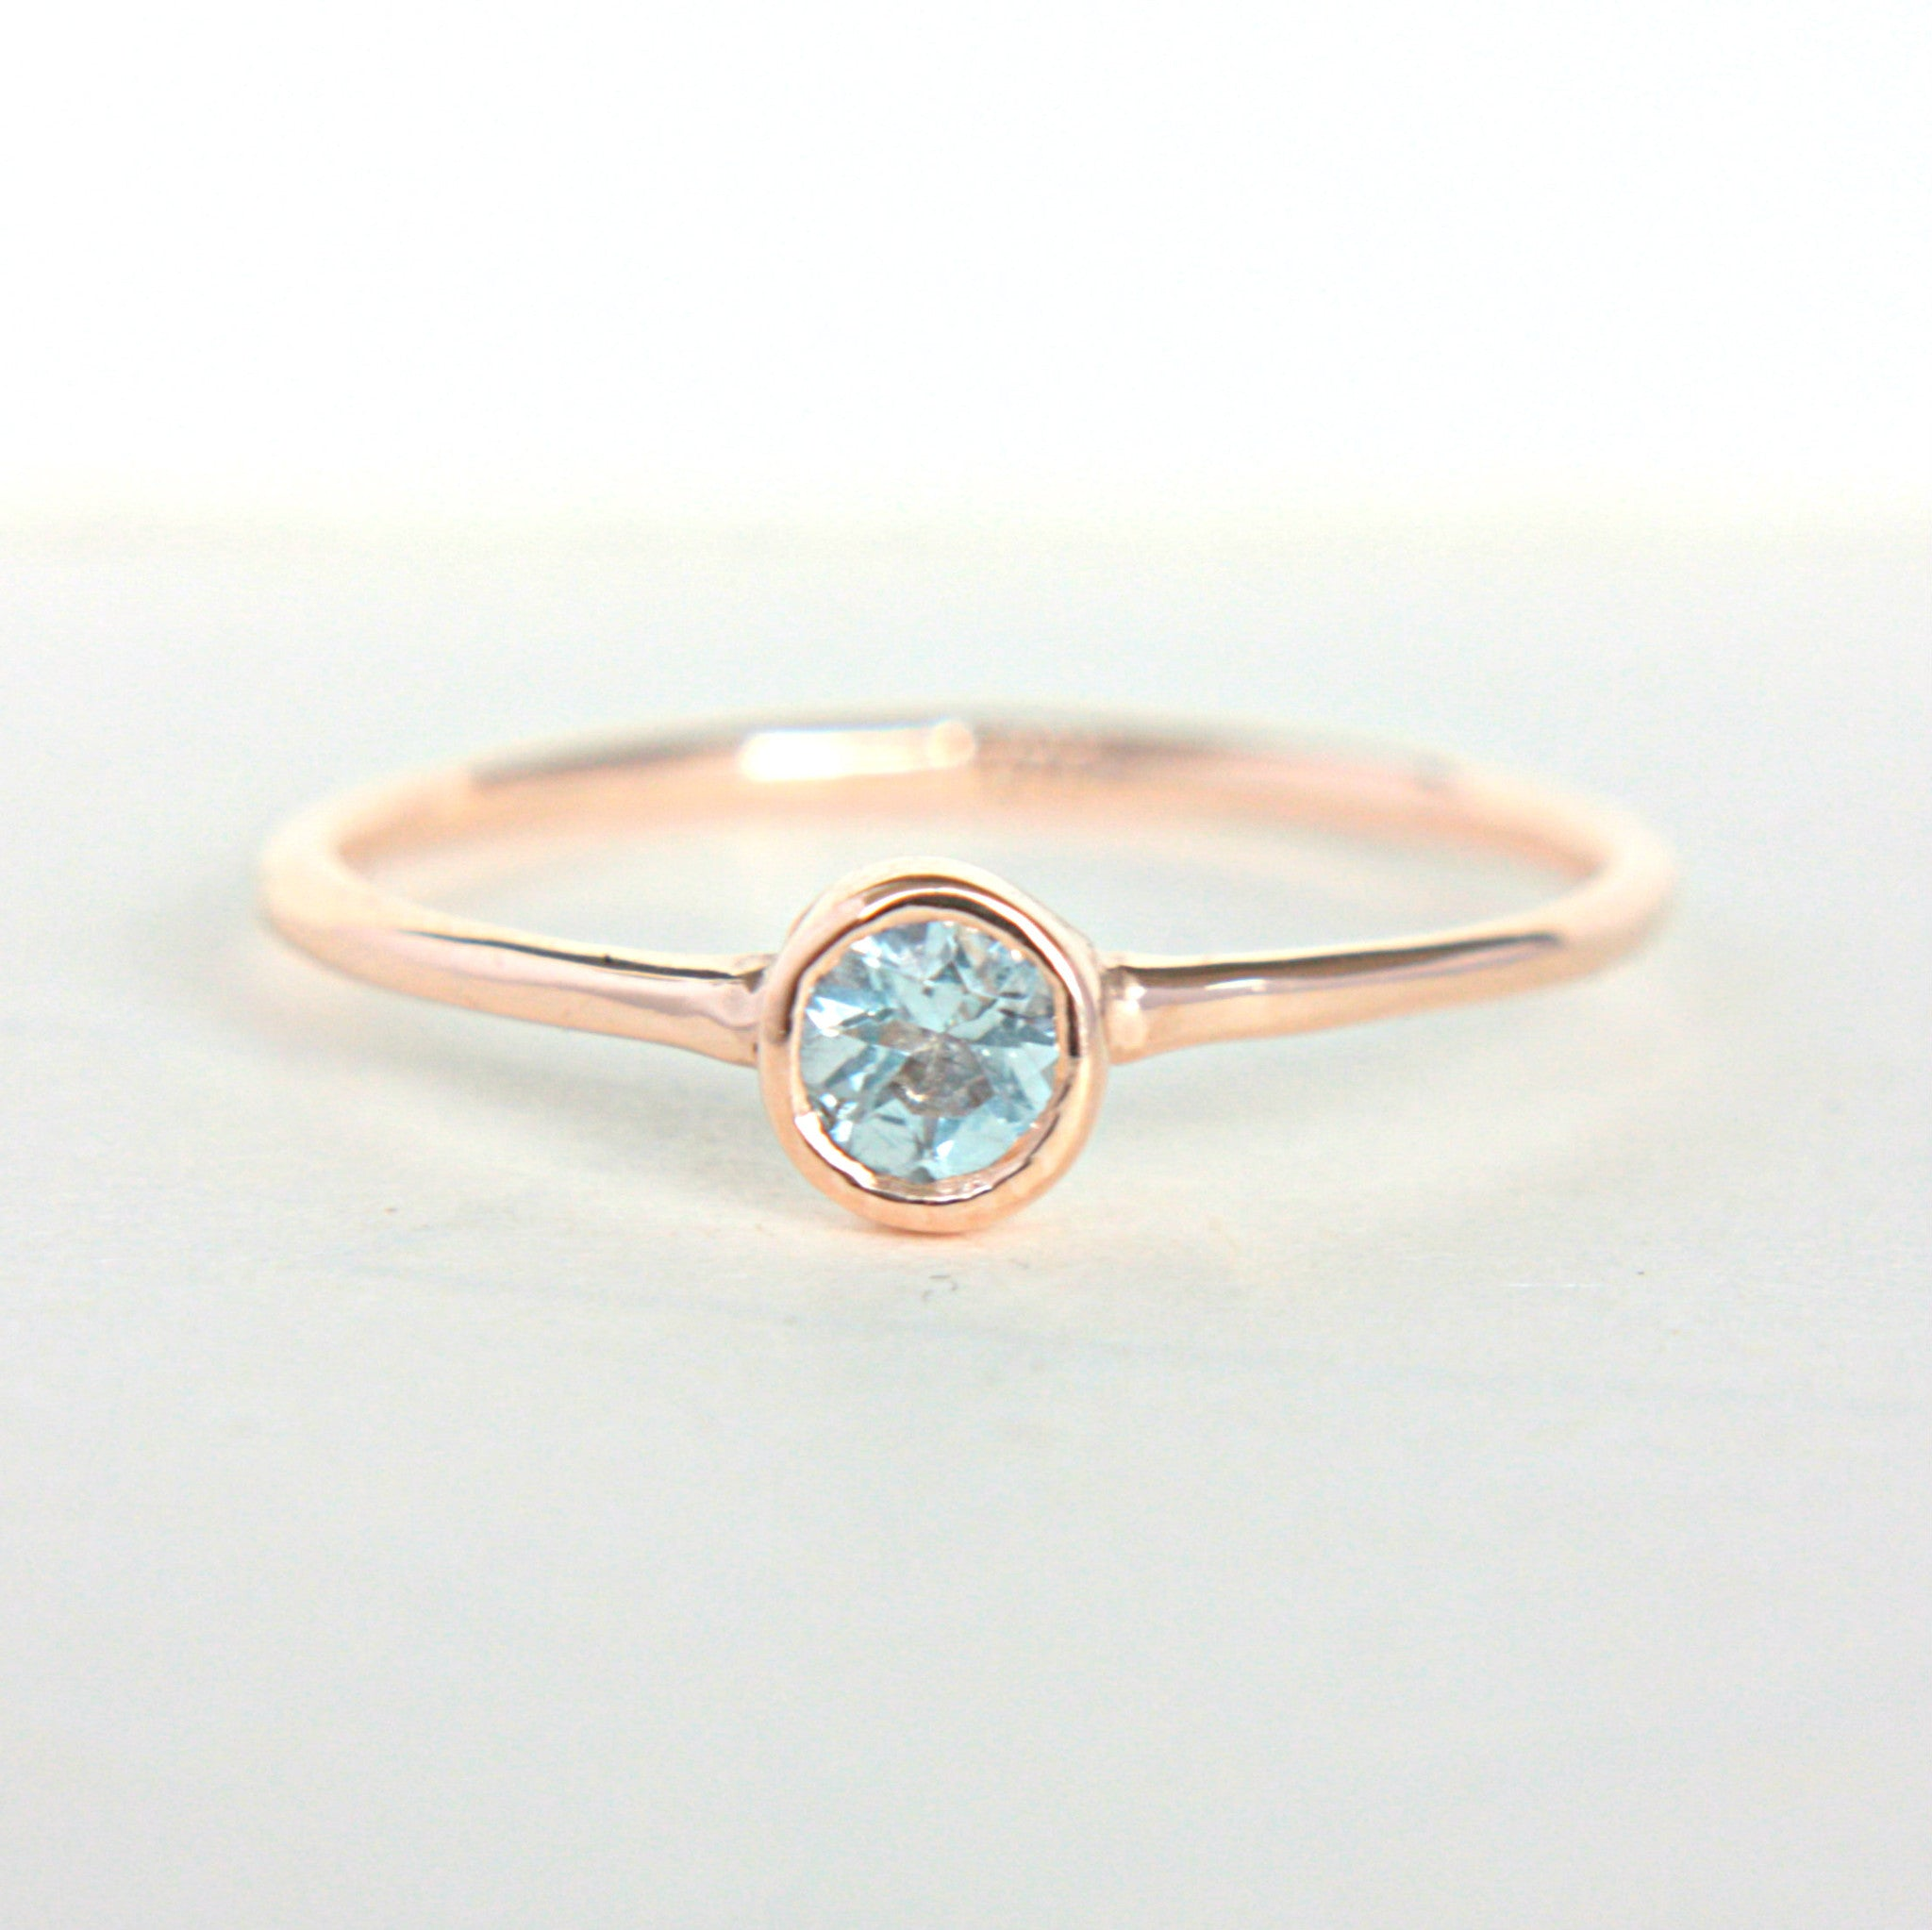 Aquamarine 14k Rose Gold Ring - Manari Design